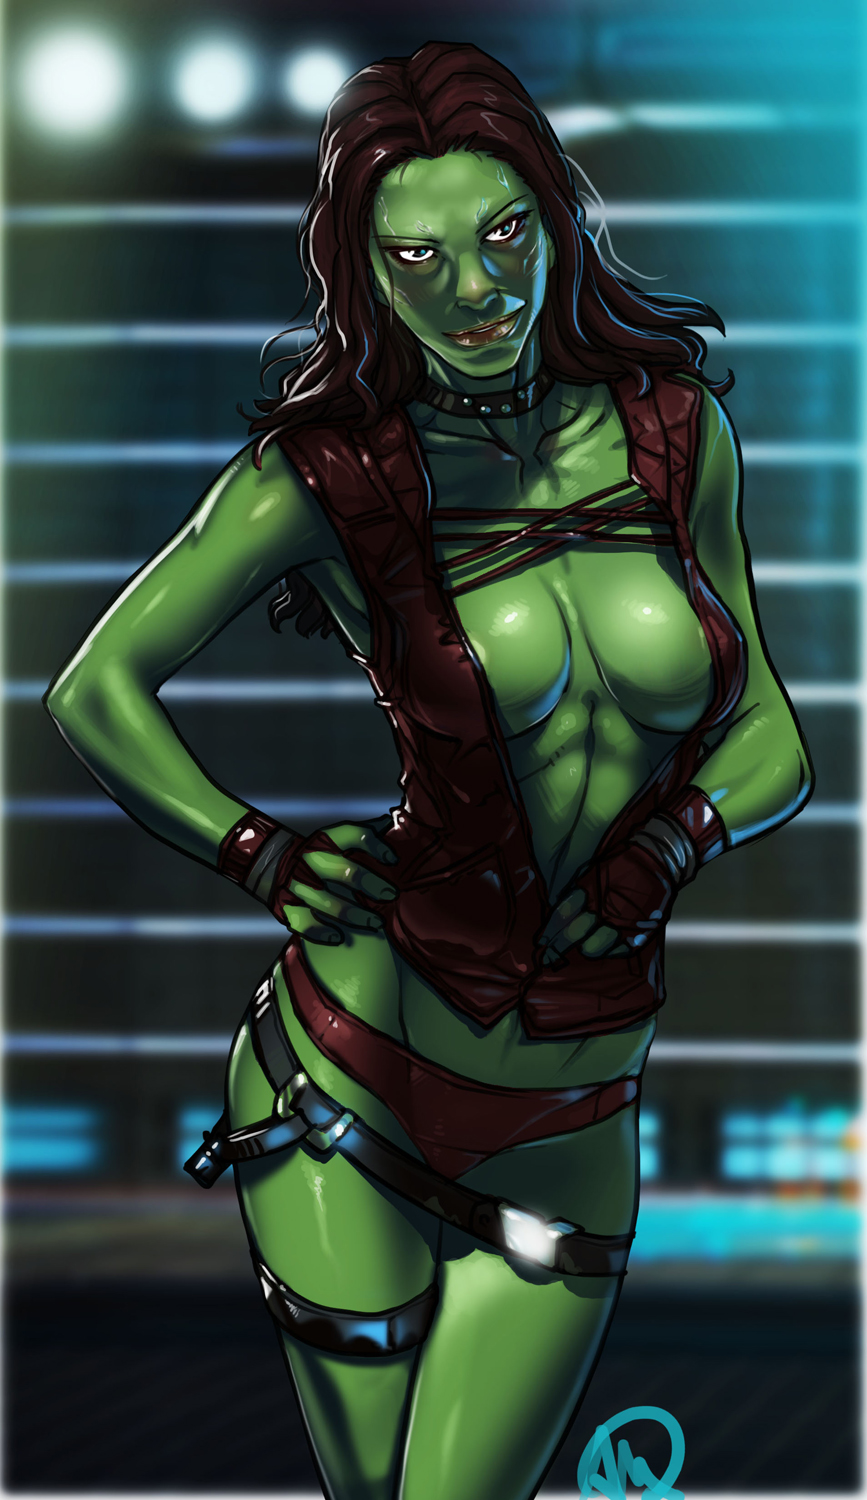 Guardians of the Galaxy - Gamora *Fixed* by Ganassa